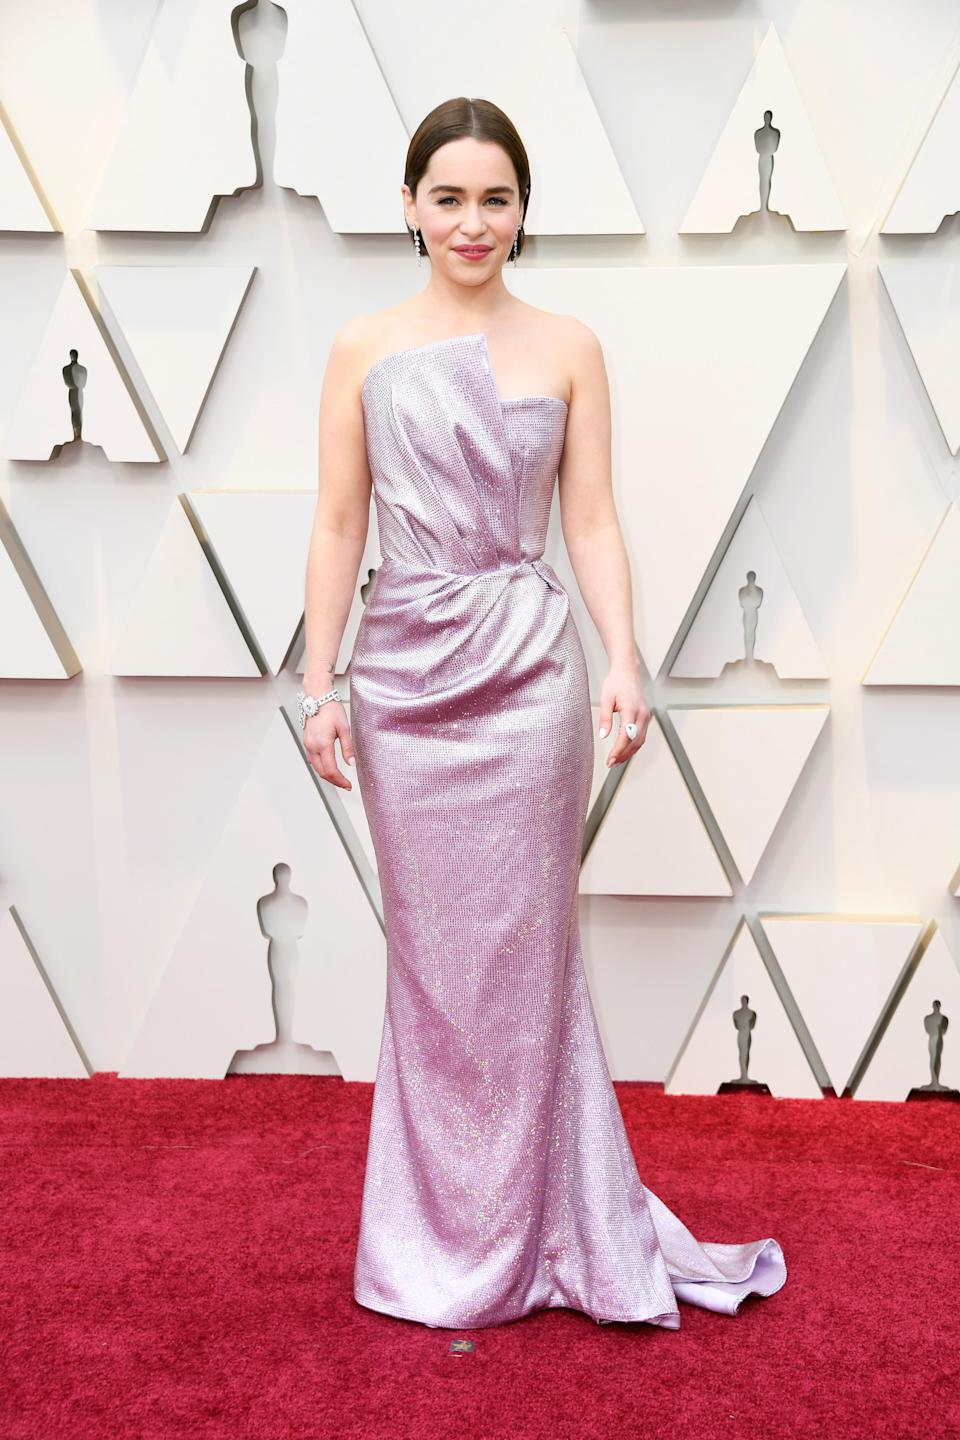 """<p>The """"Game of Thrones"""" star shined in a lilac metallic gown by Balmain. (Image via Getty Images). </p>"""